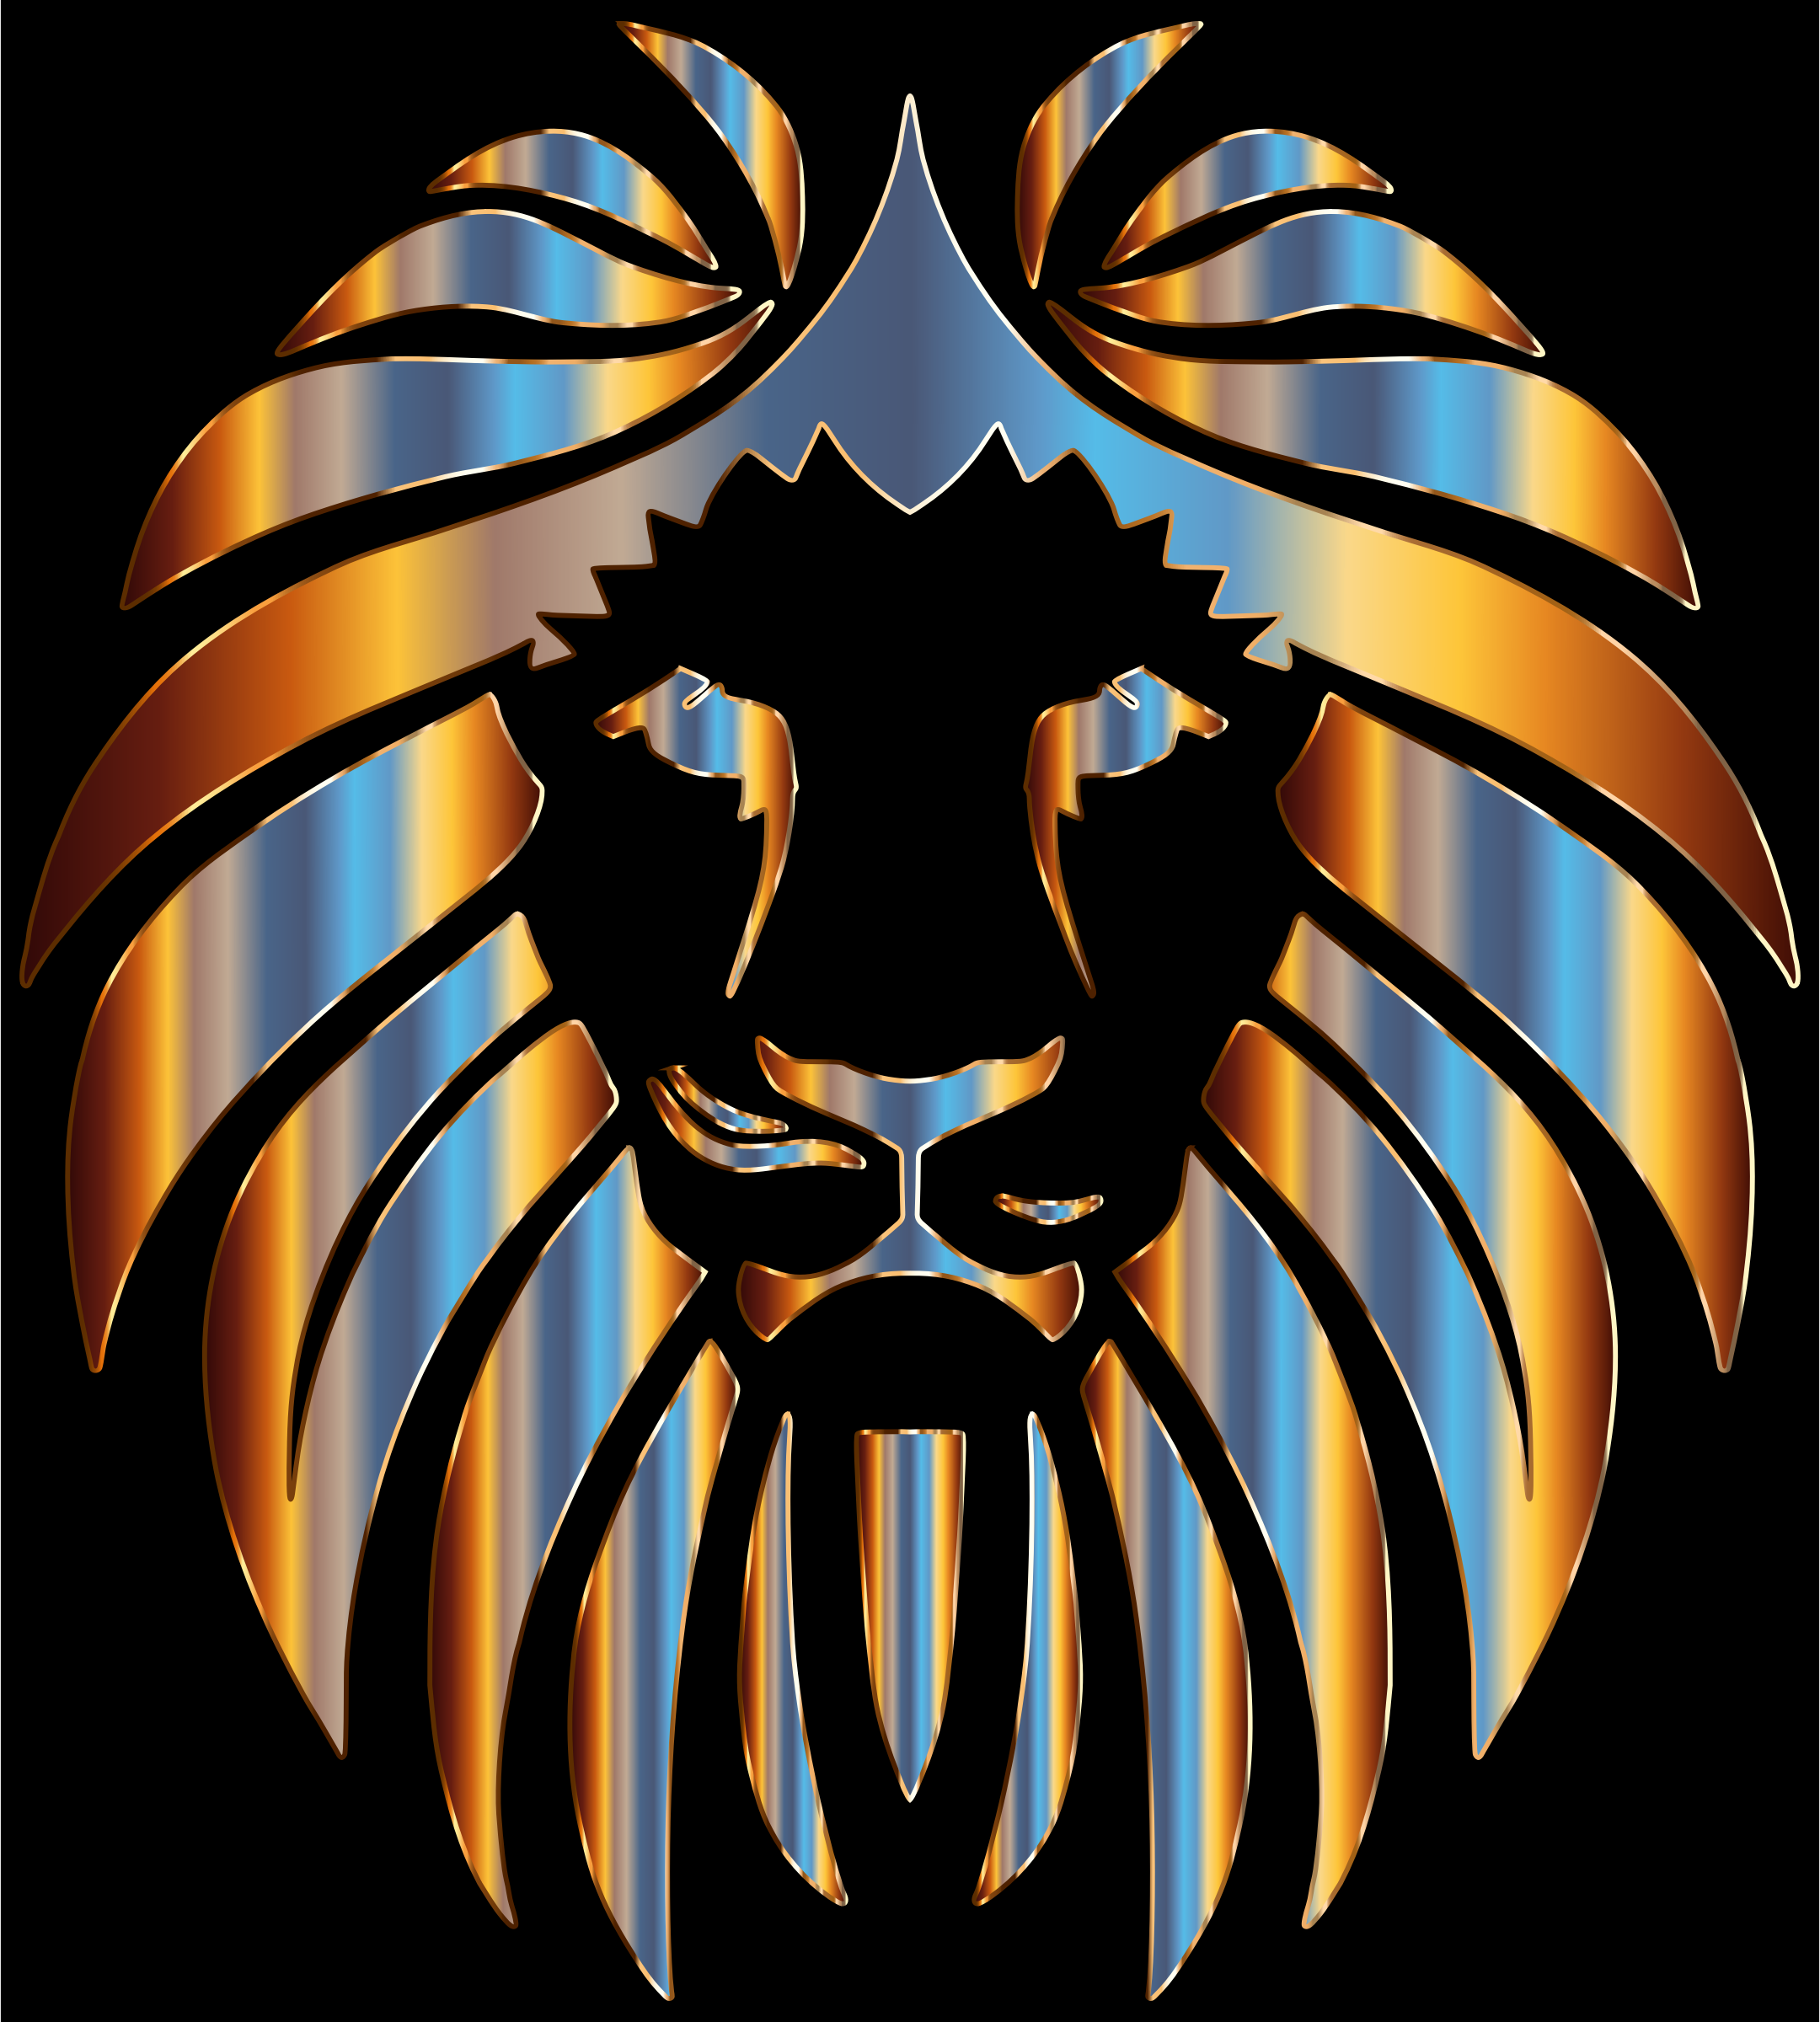 Prismatic Lion 2 by GDJ